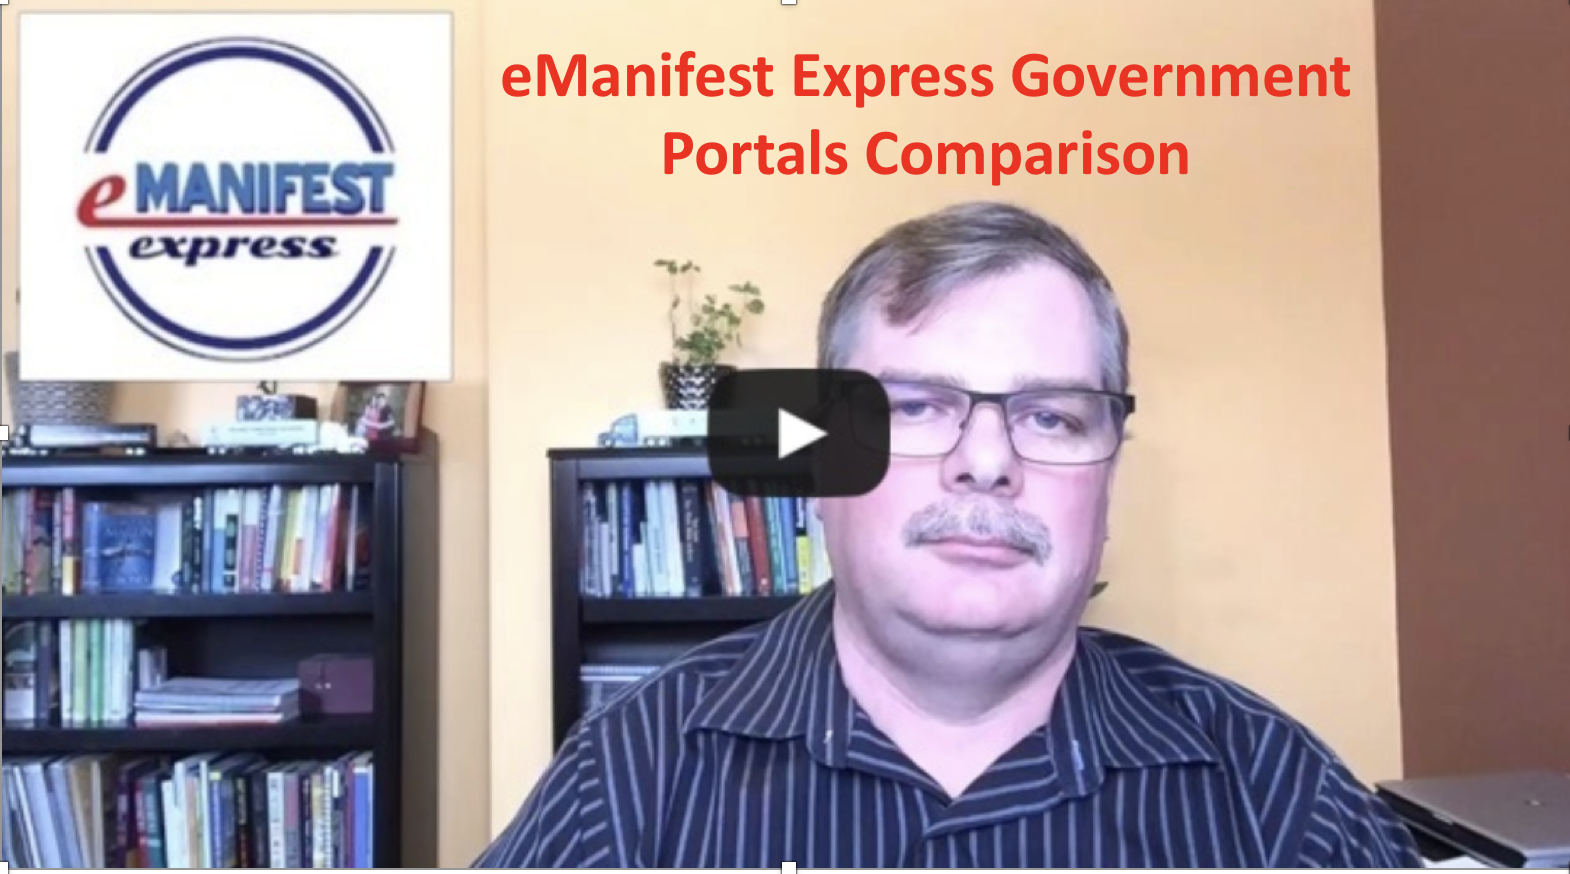 eManifest Express Government Portals Comparison